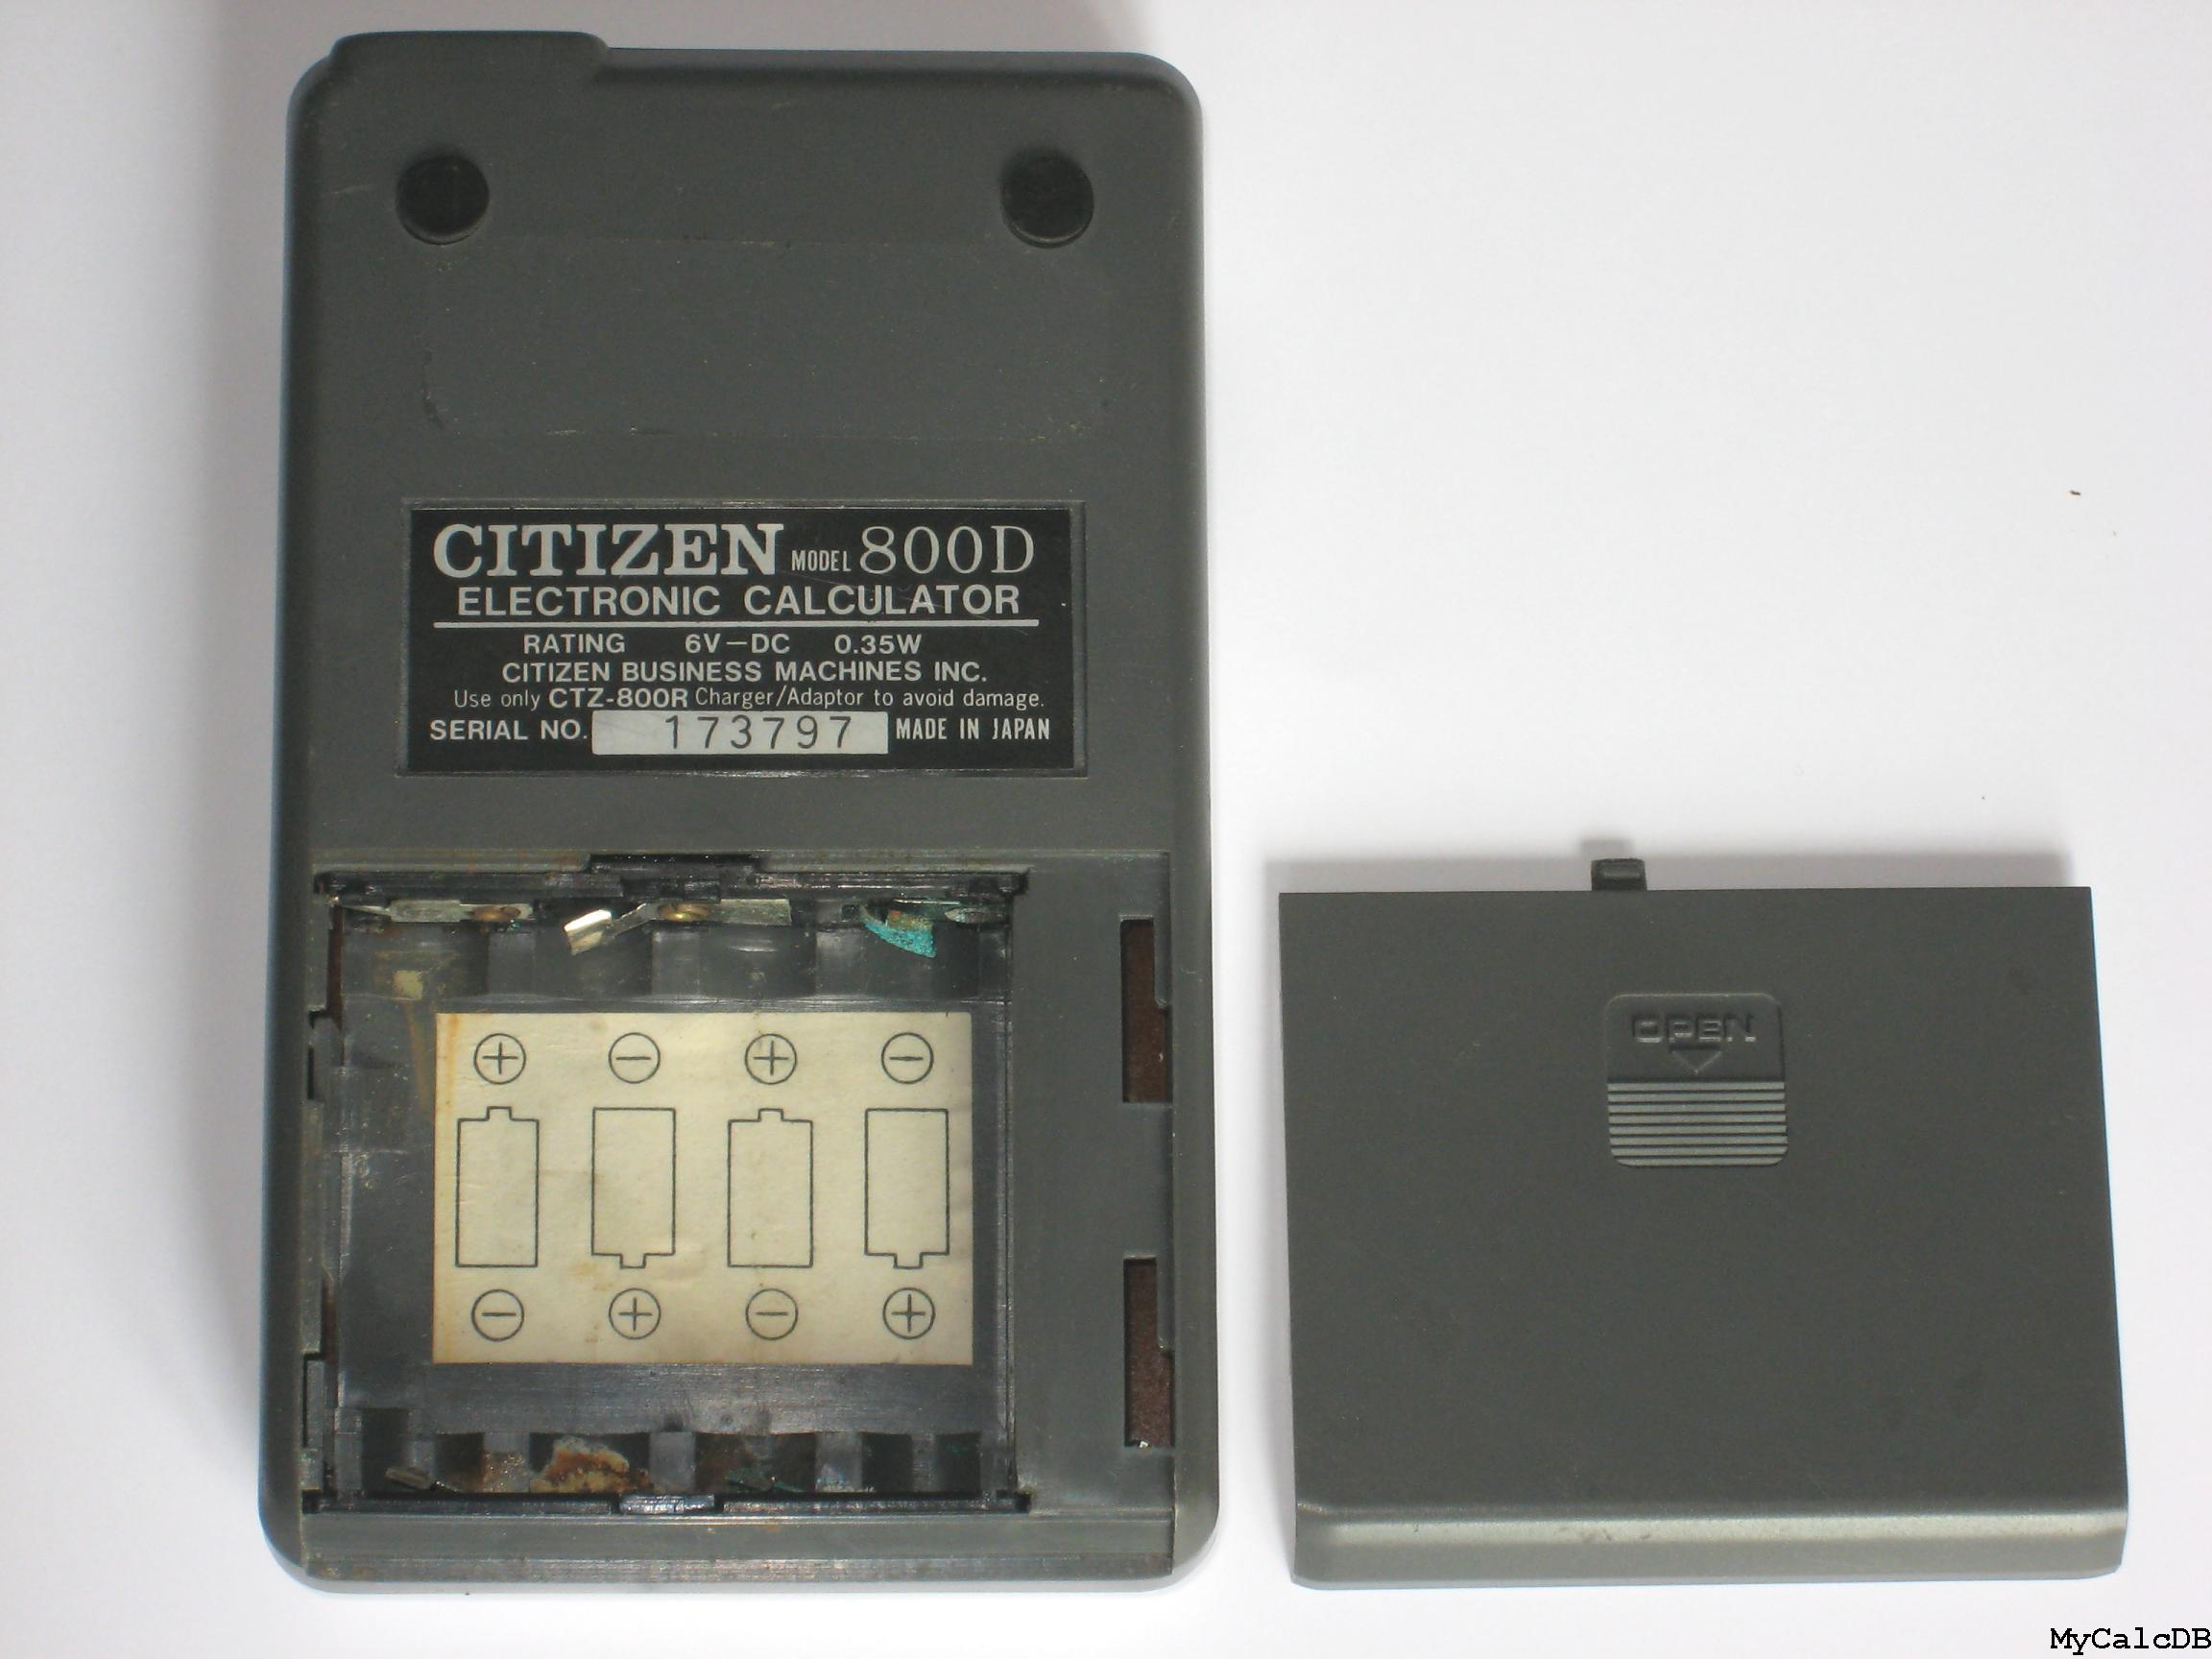 Citizen 800D